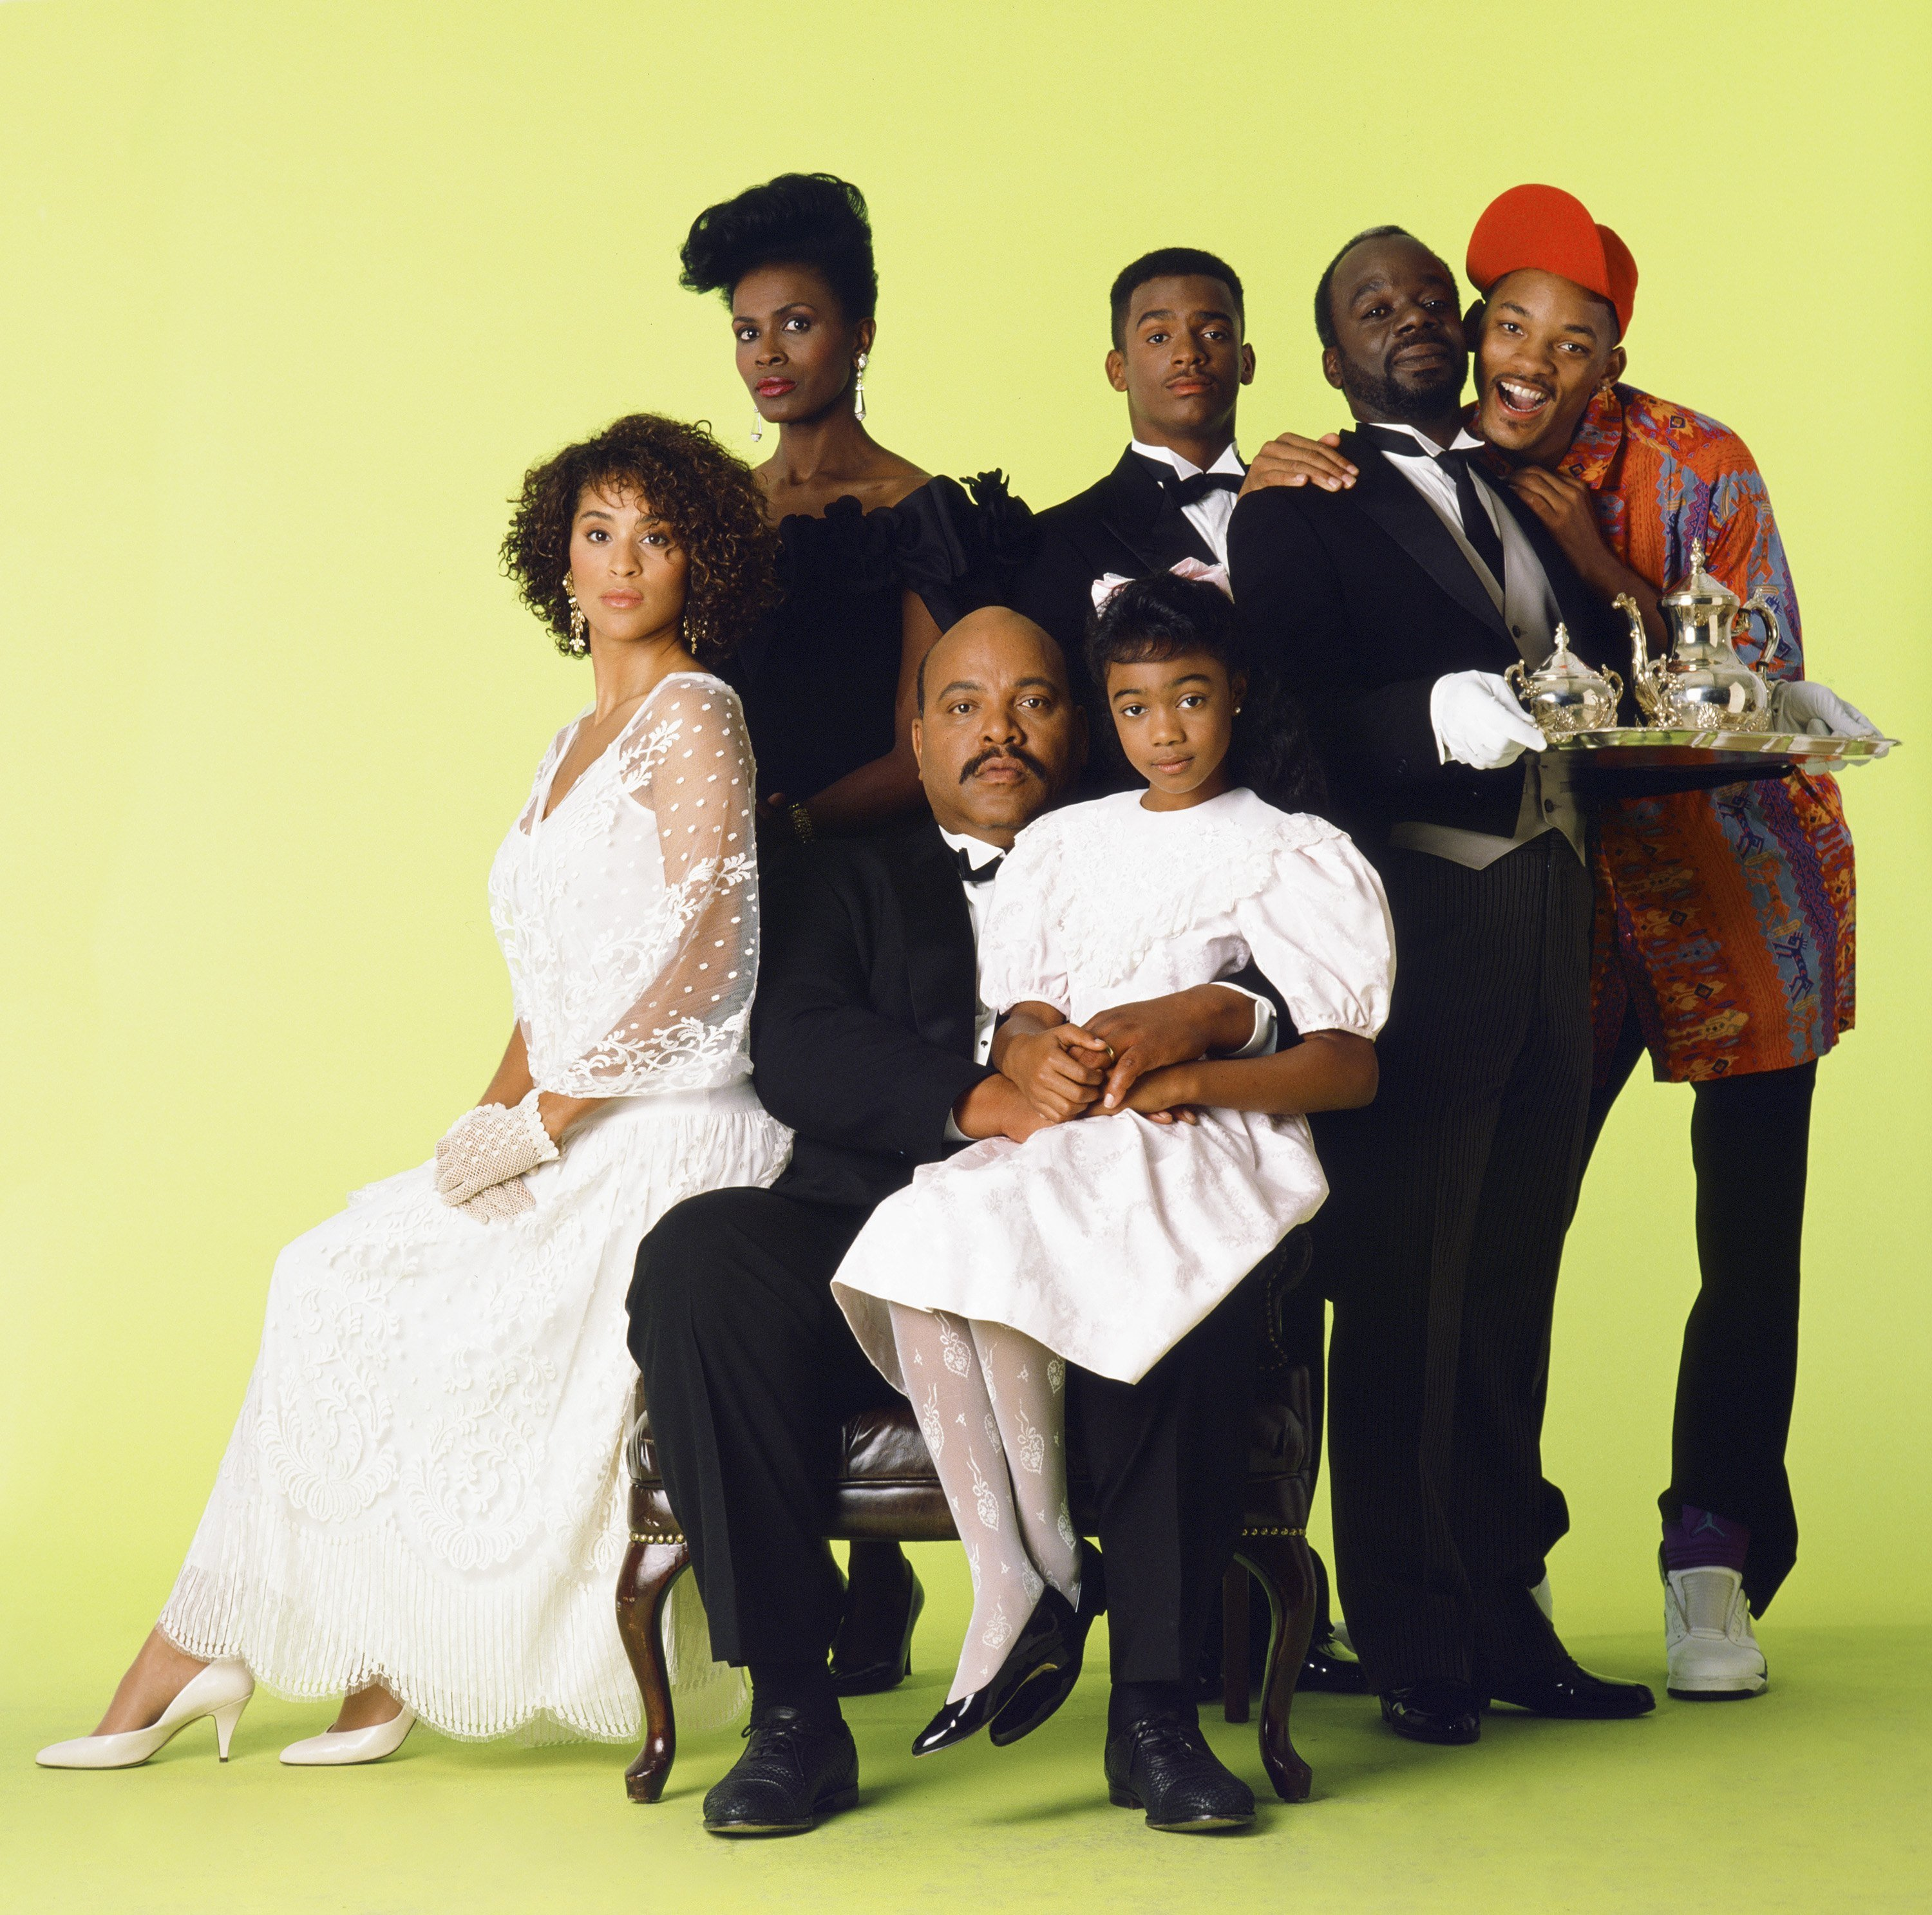 """Karyn Parsons, Janet Hubert, James Avery, Tatyana Ali, Alfonso Ribeiro, Joseph Marcell, and Will Smith on the set of """"Fresh Prince of Bel-Air"""" on August 15, 1992 